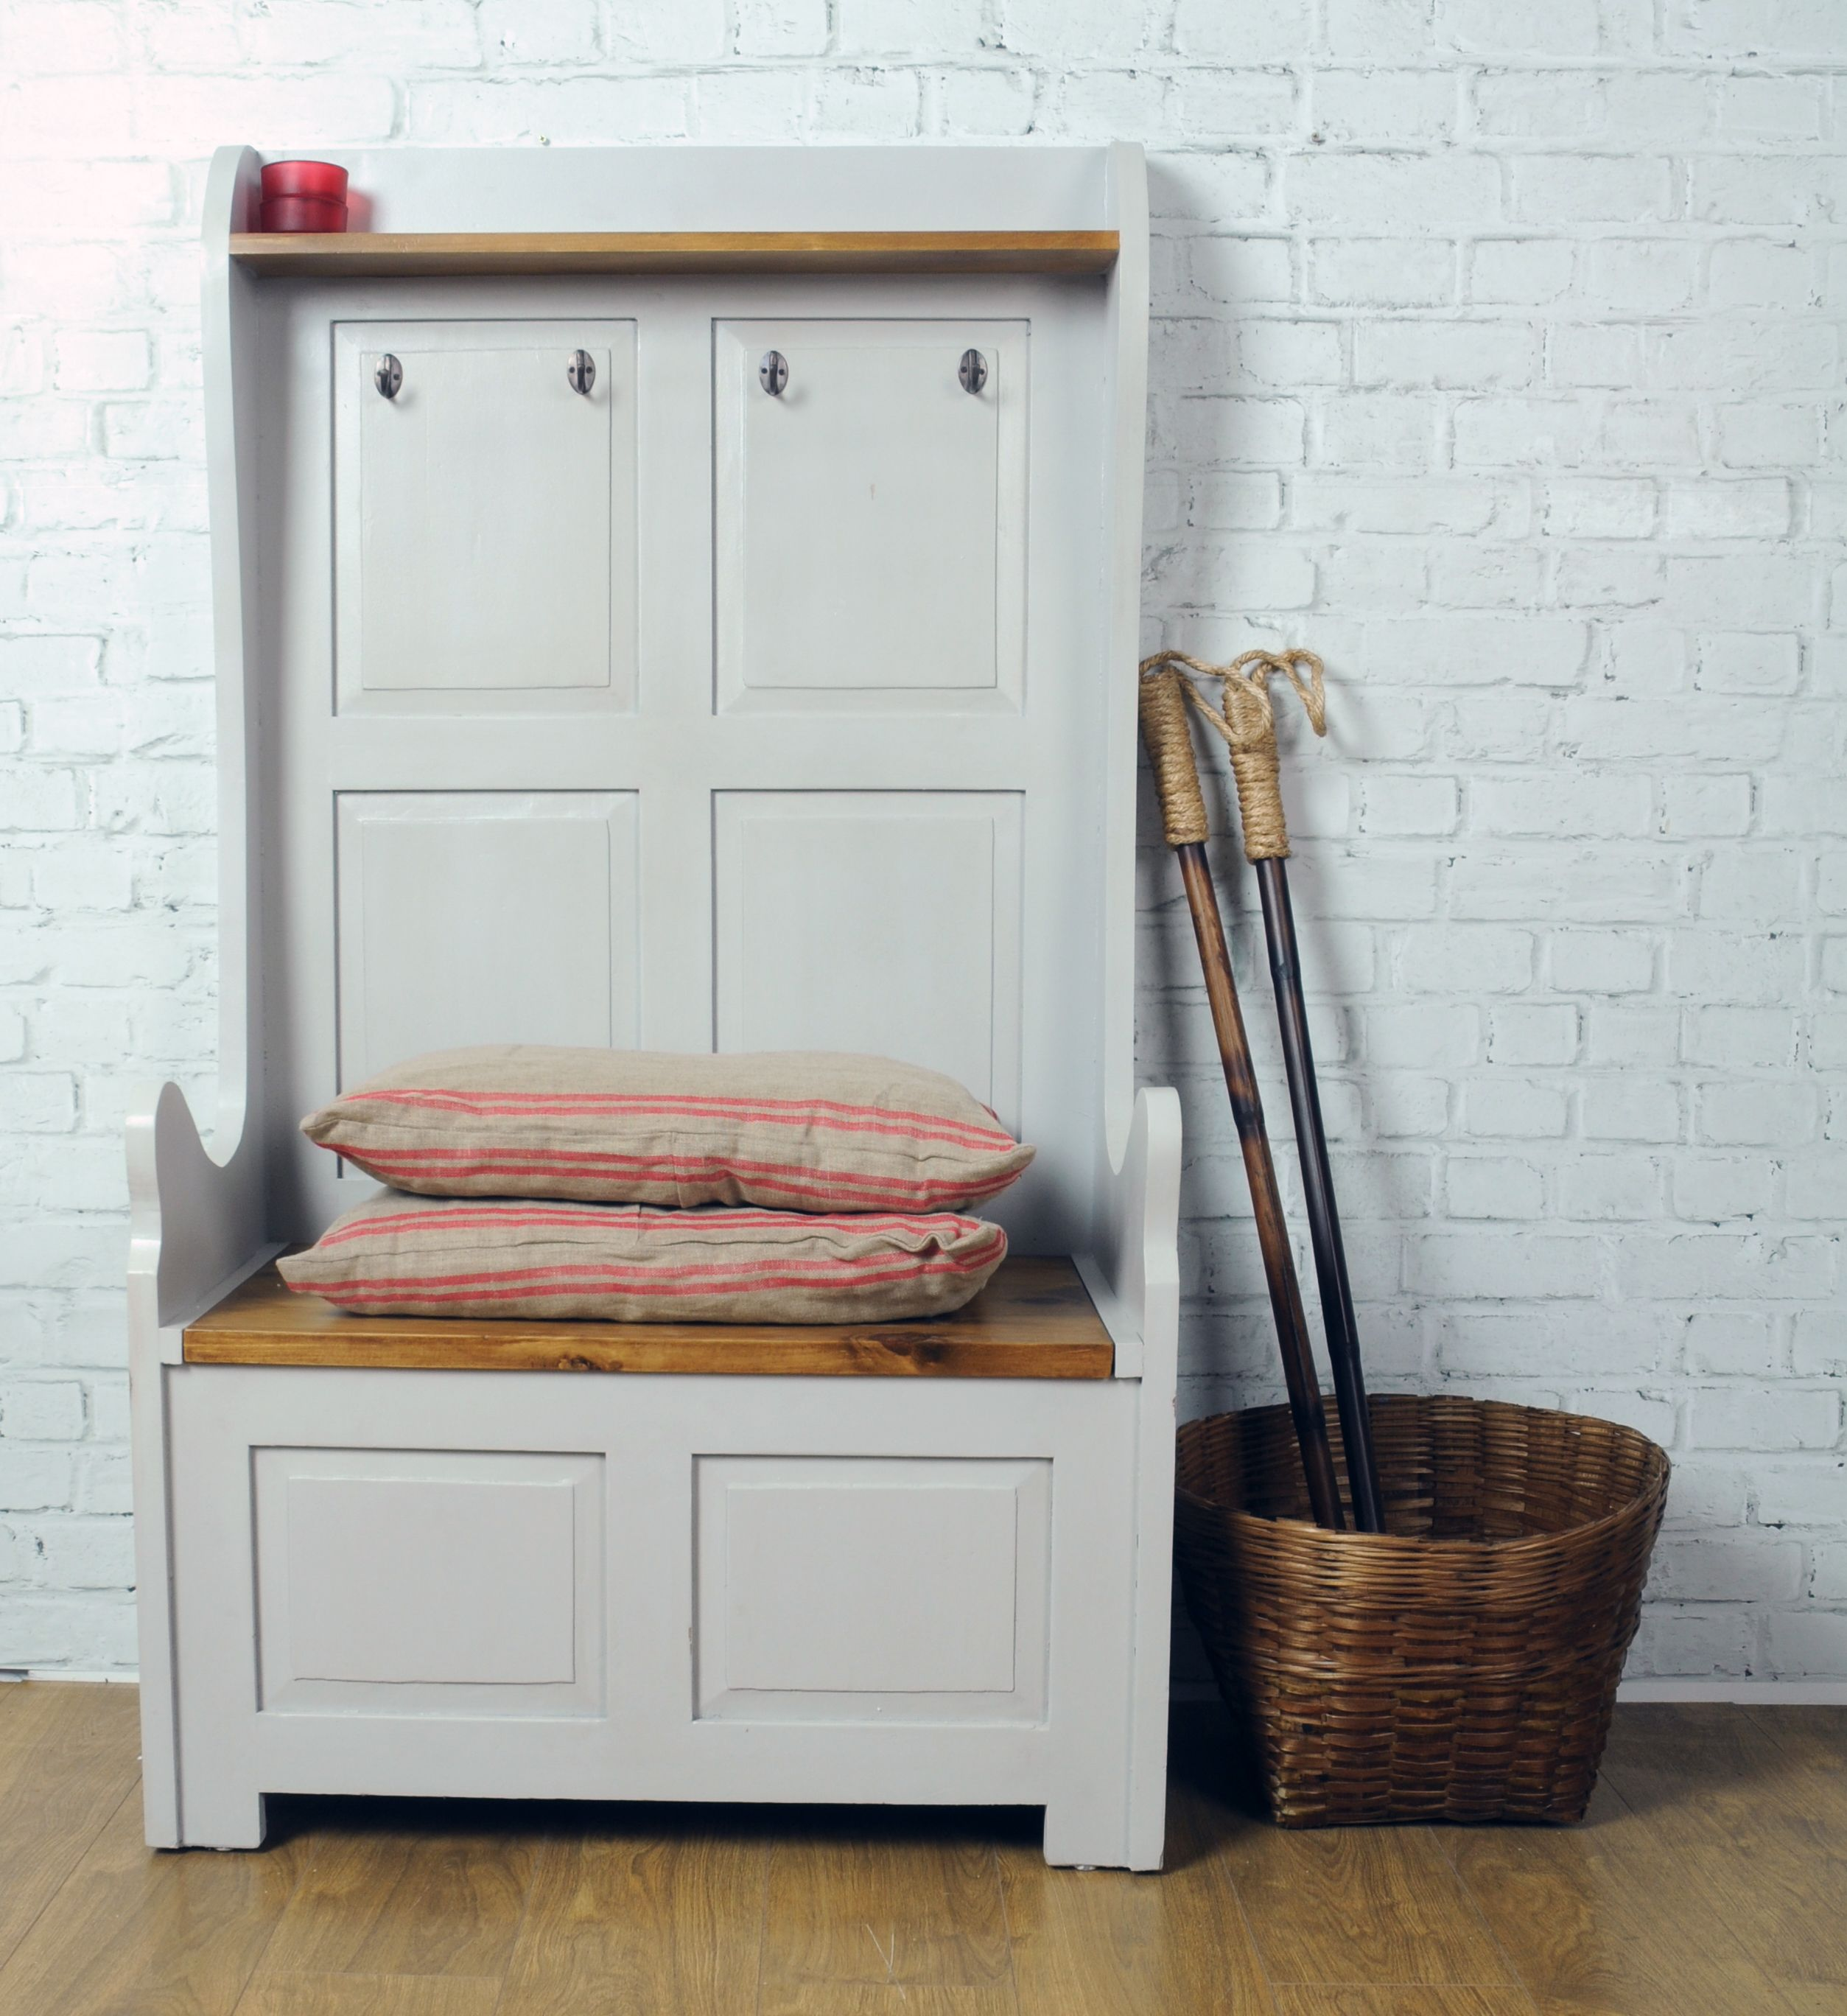 french frey monks hallway tall bench with coat hooks and seat, Wohnzimmer dekoo